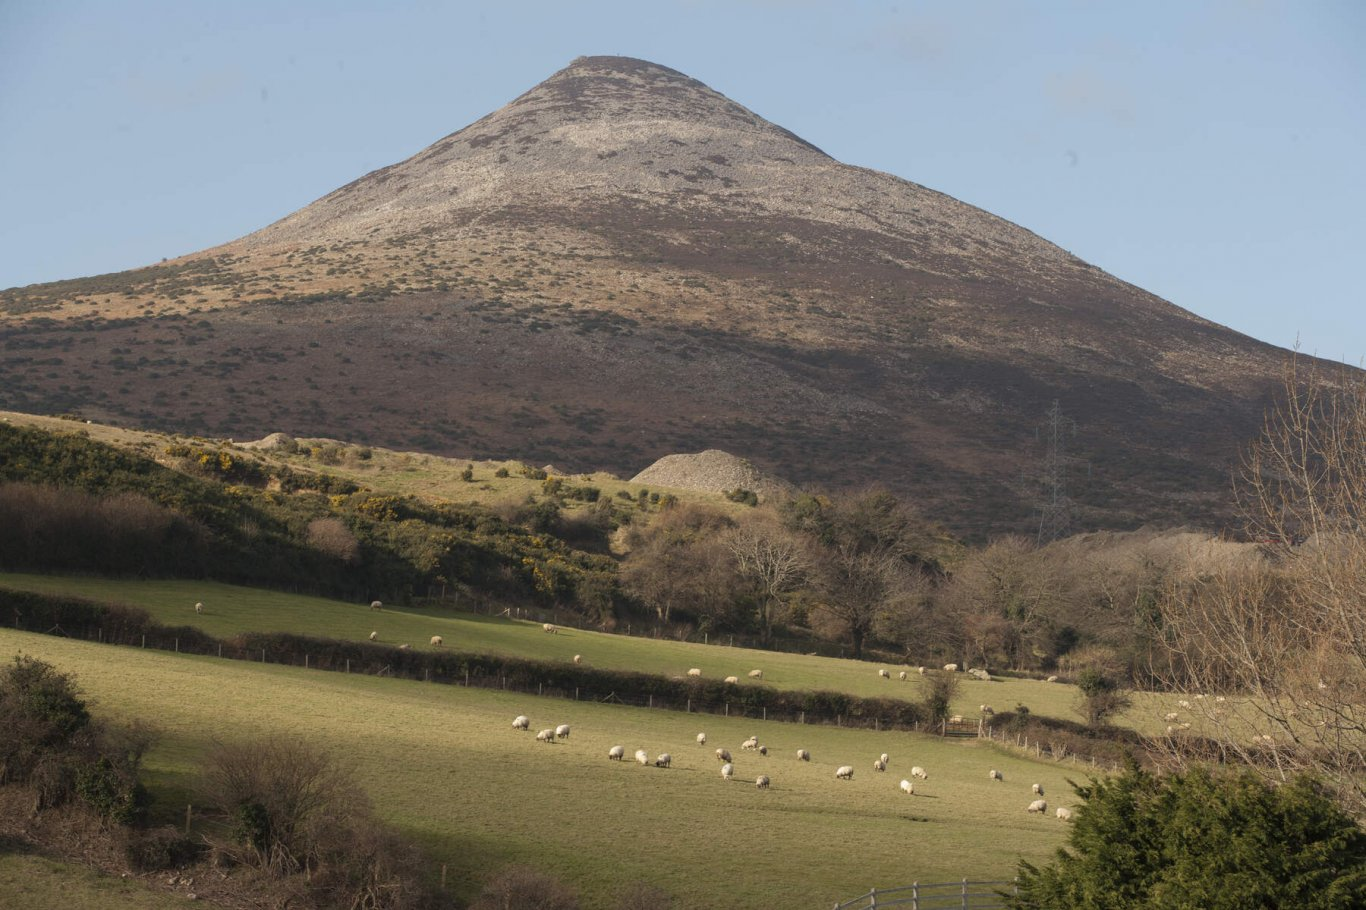 Sugarload mountain with sheep in foreground